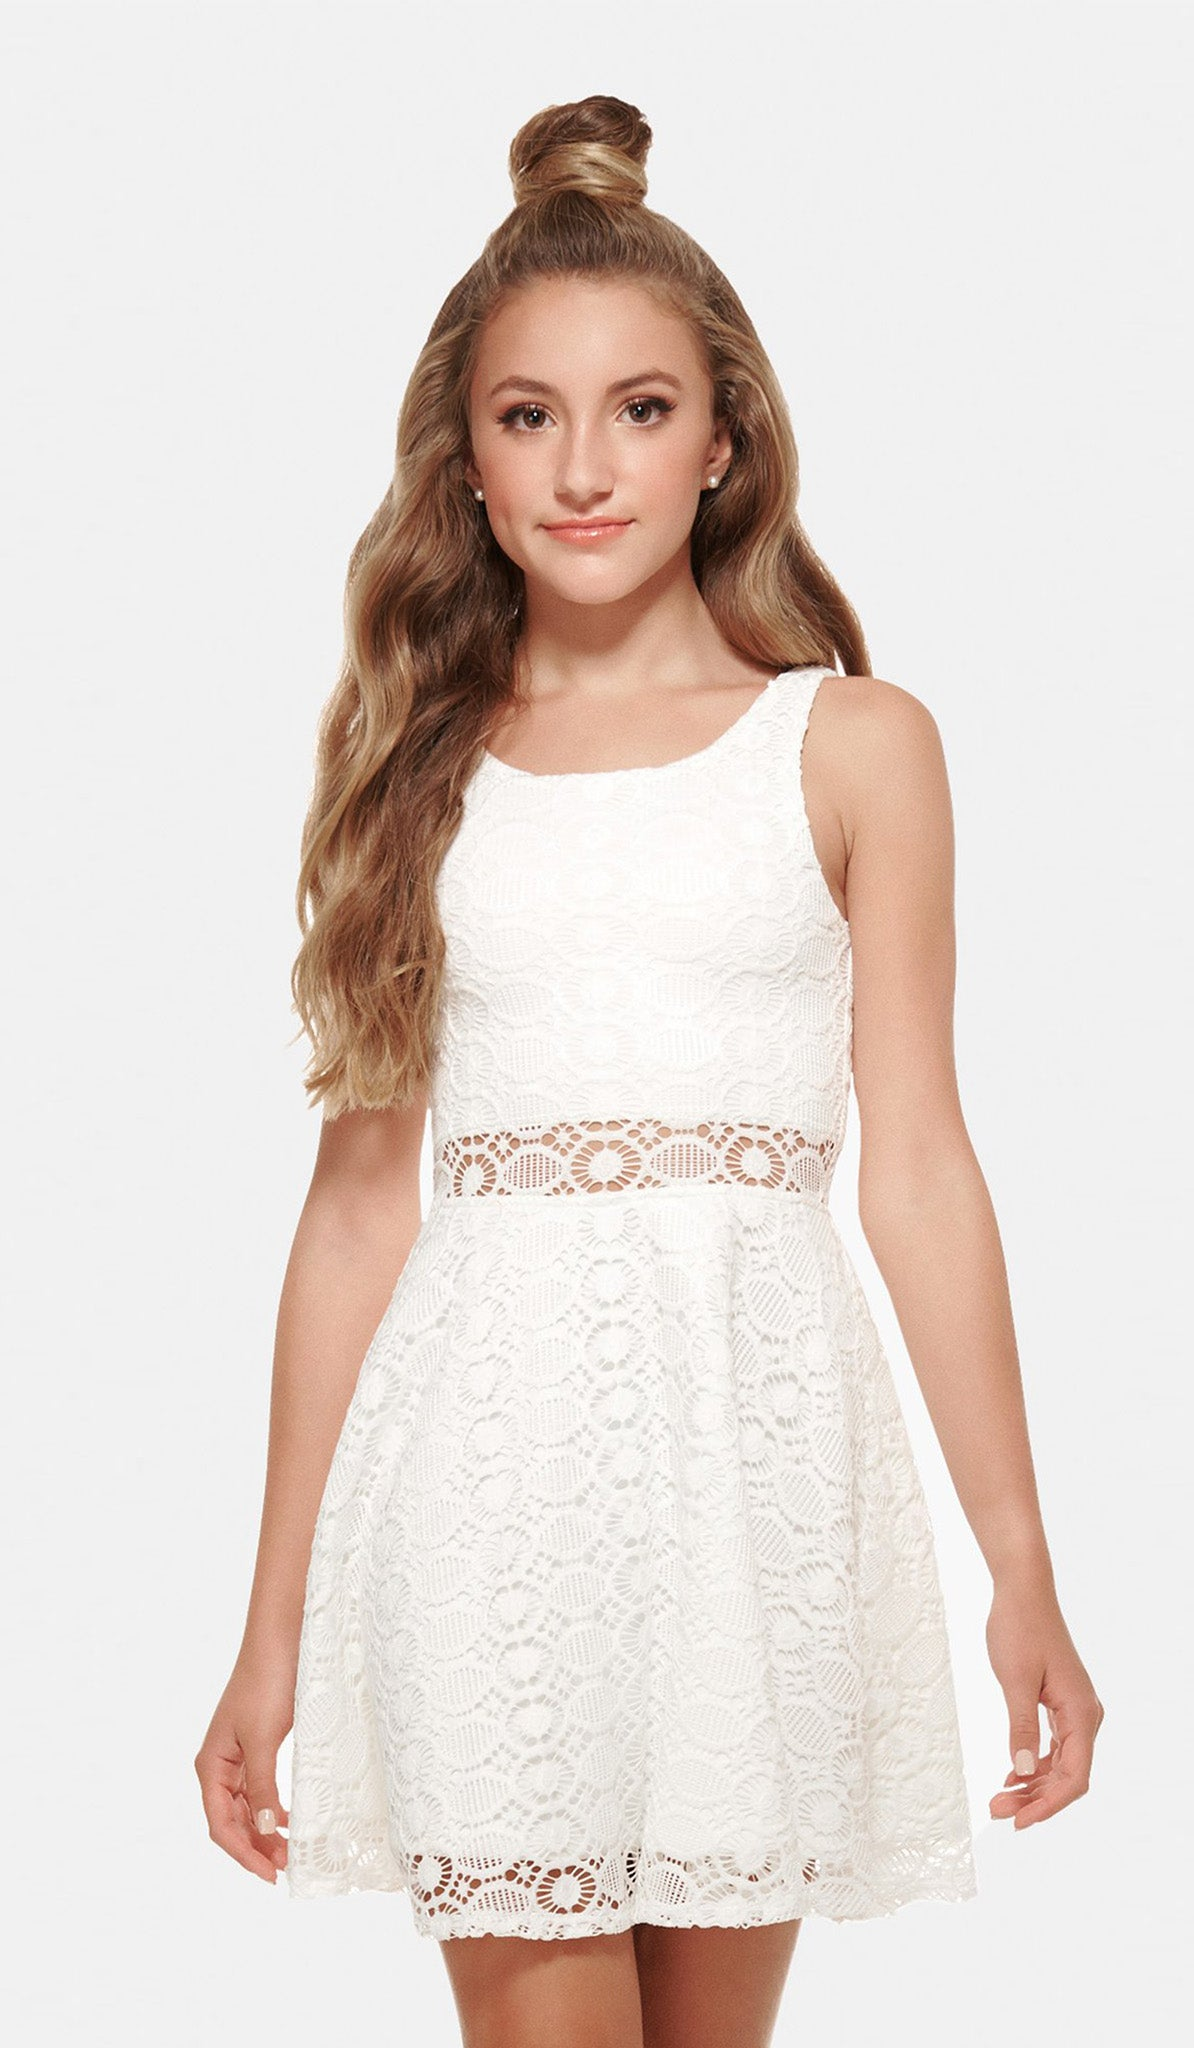 THE NANCY DRESS - Sallymiller.com - [variant title] - | Event & Party Dresses for Tween Girls & Juniors | Weddings Dresses, Bat Mitzvah Dresses, Sweet Sixteen Dresses, Graduation Dresses, Birthday Party Dresses, Bar Mitzvah Dresses, Cotillion Dresses